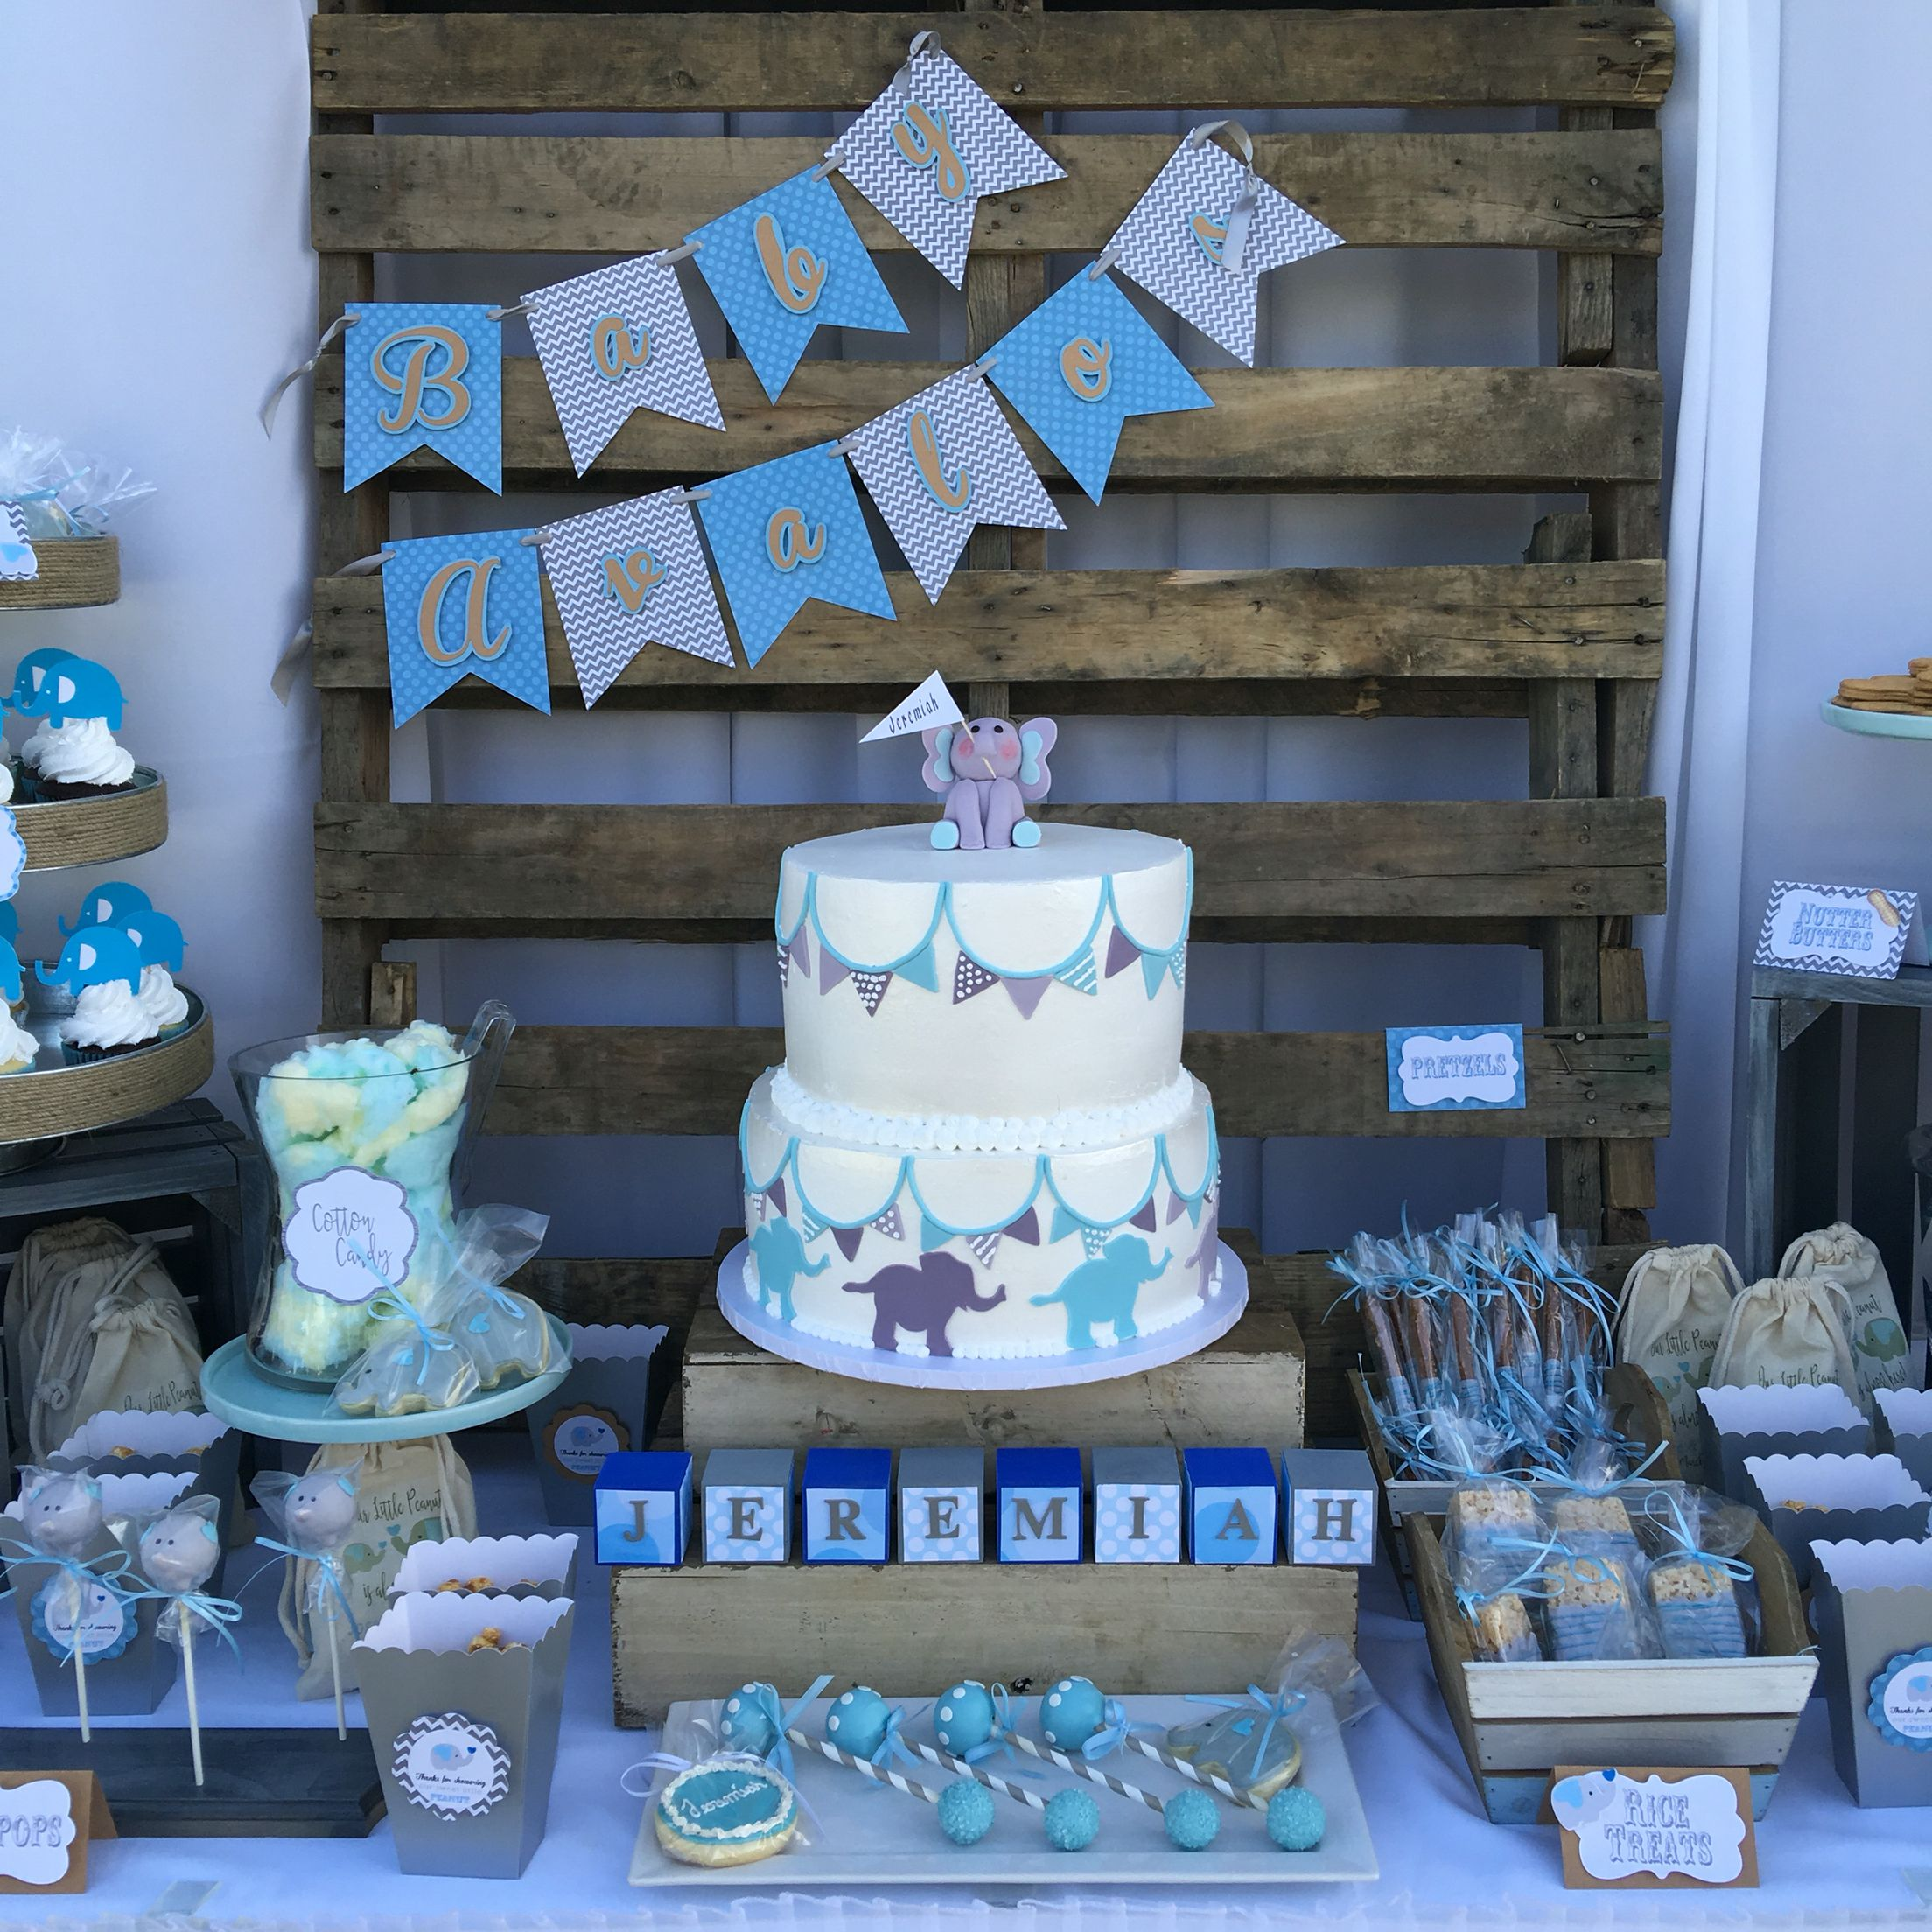 Baby Shower Themes For Girls Pinterest: Rustic Blue And Gray Elephant Baby Shower Theme